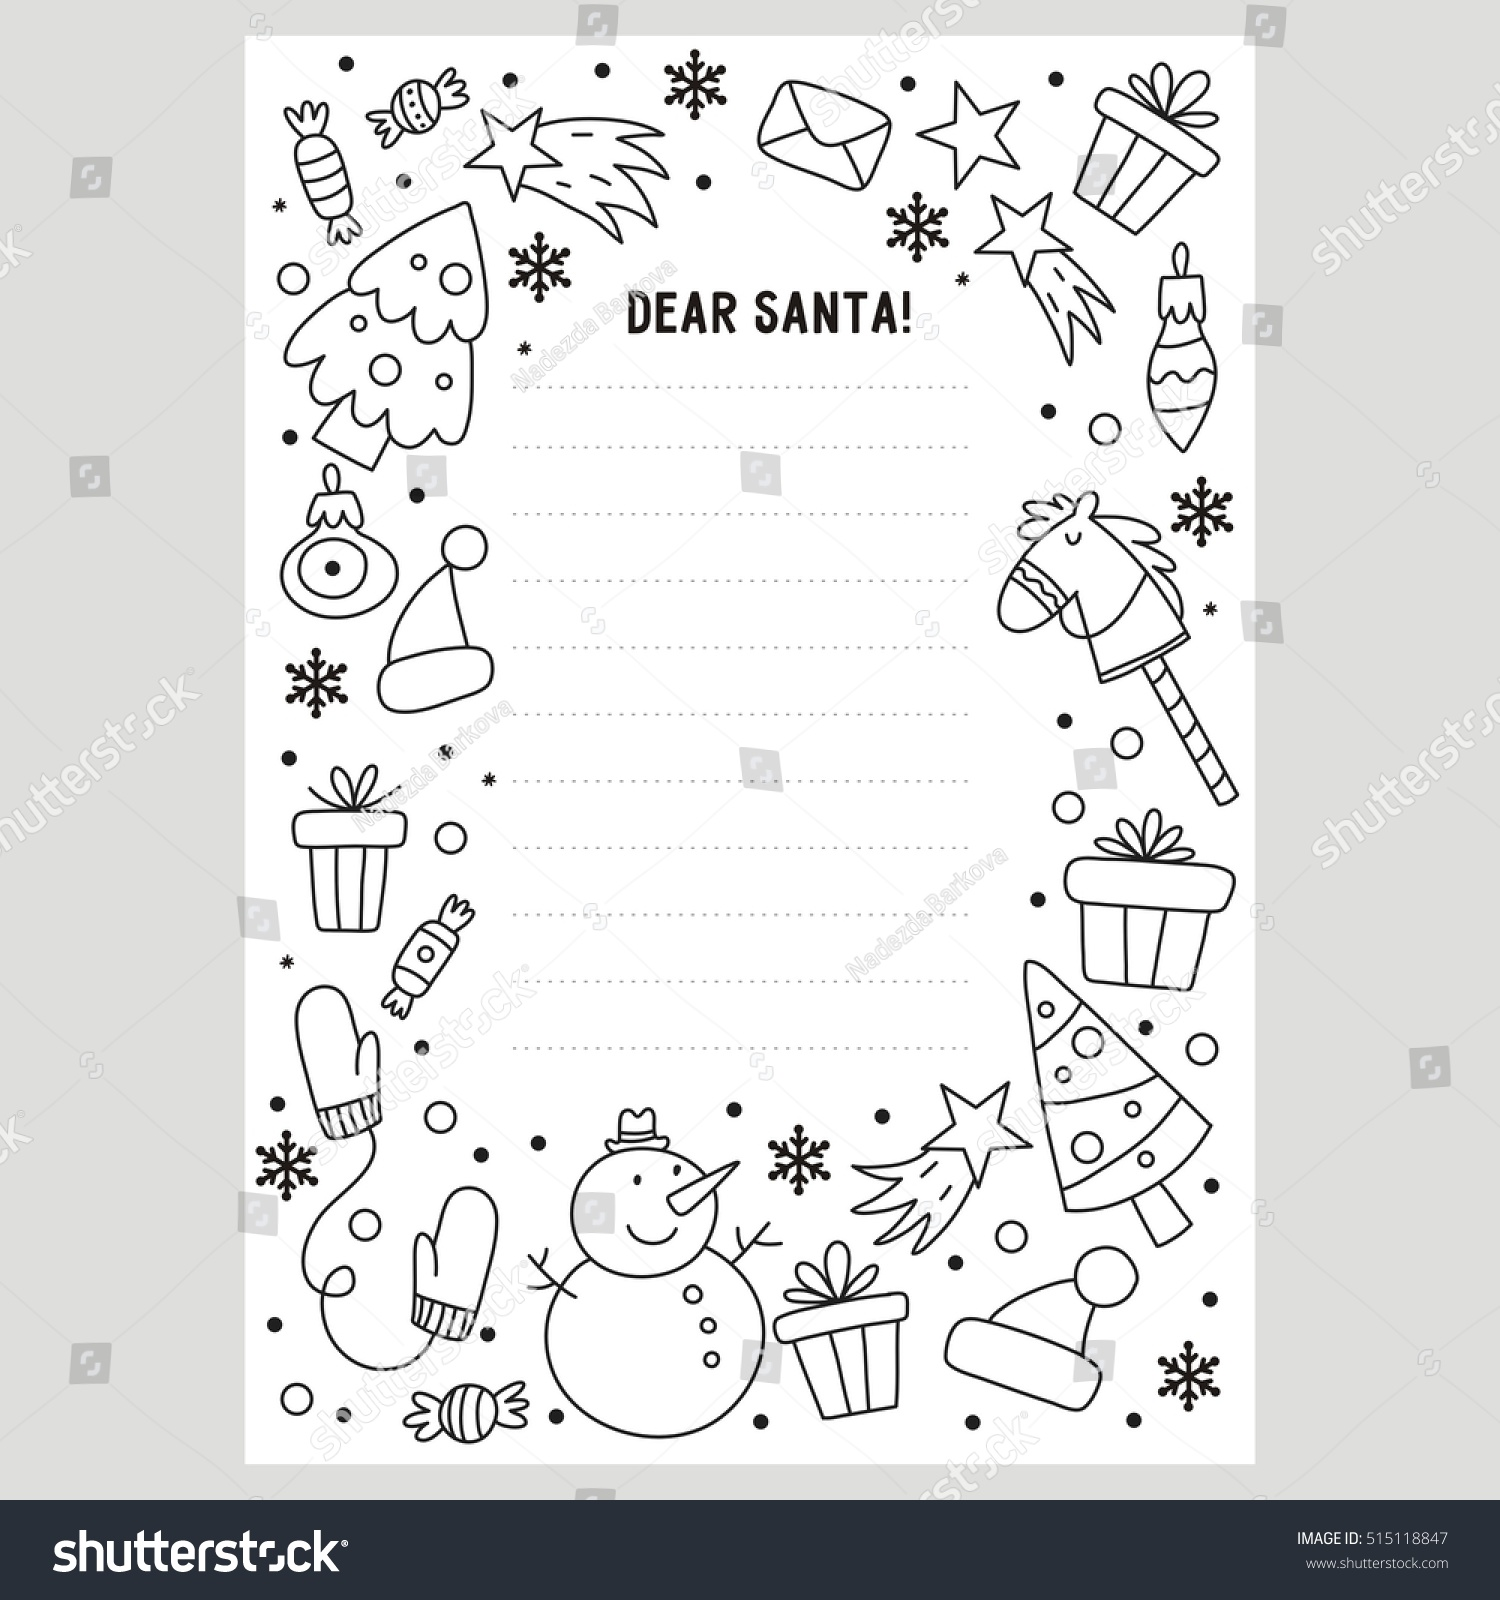 Coloring Pages Letters To Santa : Dear santa letter coloring page stock vector